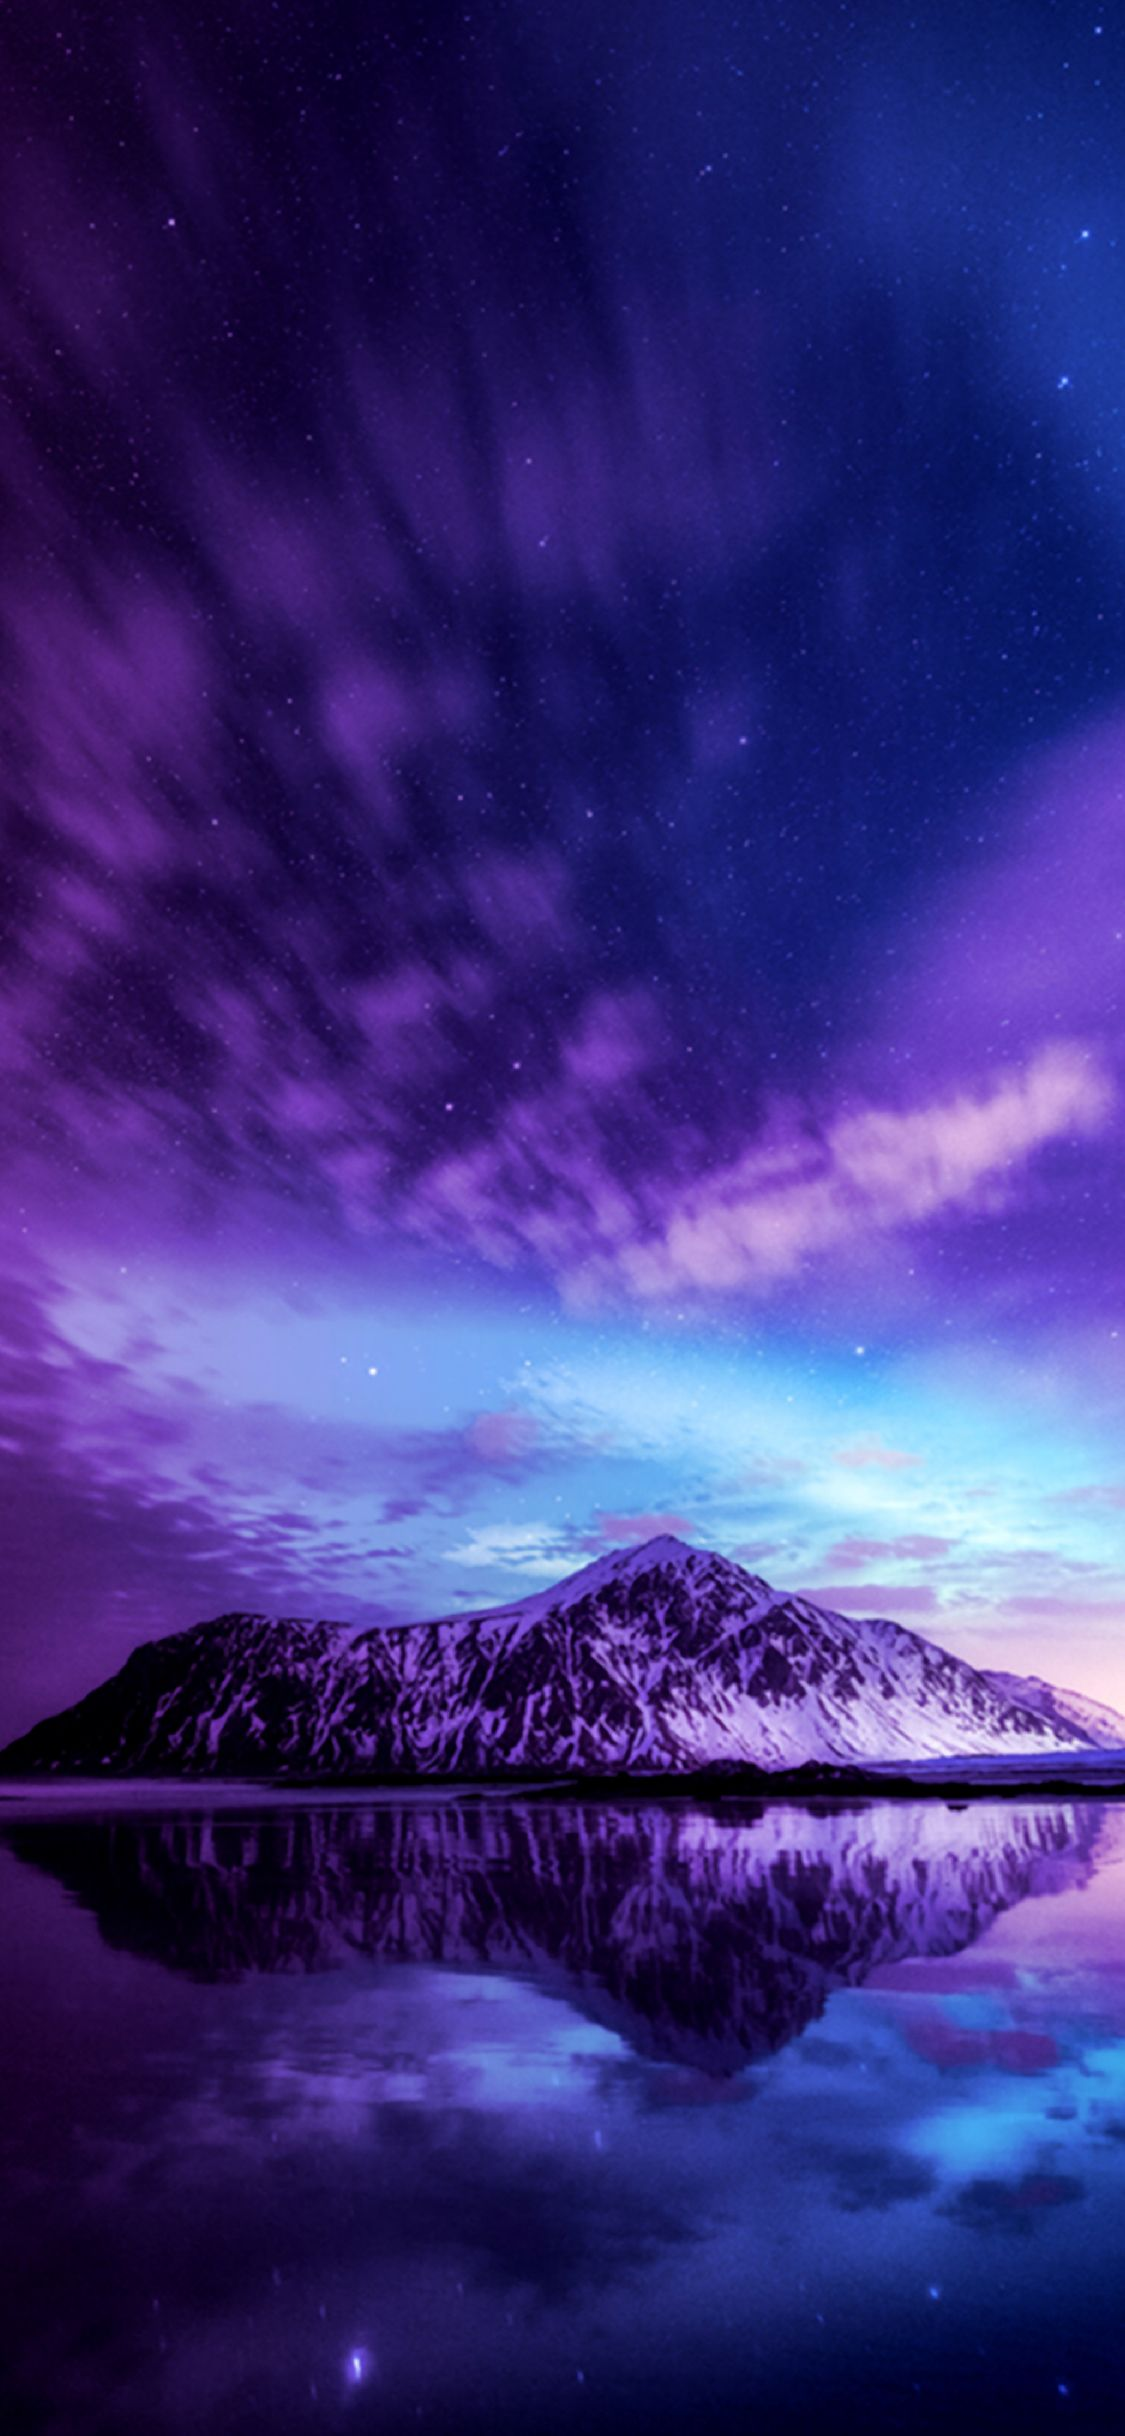 A Mountain In A Purple Sky Fantasy Landscape Nature Photos Nature Pictures